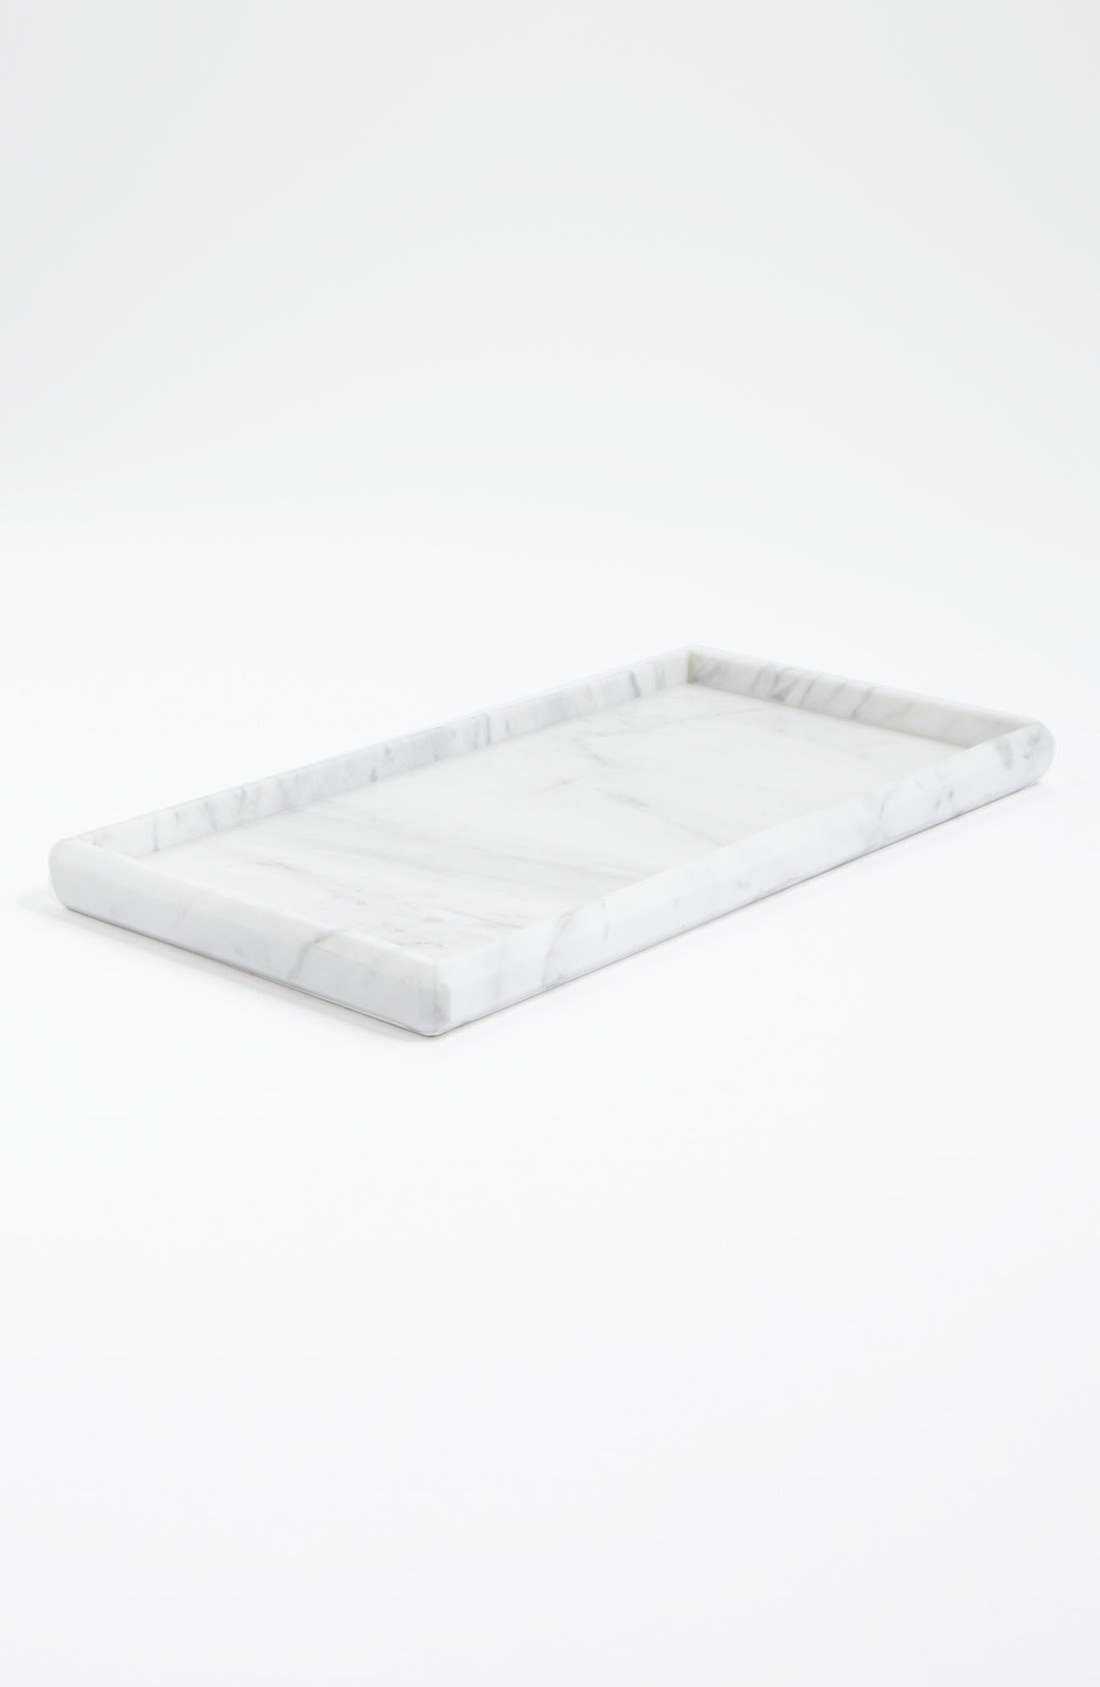 Alternate Image 1 Selected - Waterworks Studio Luna White Marble Tray (Online Only)